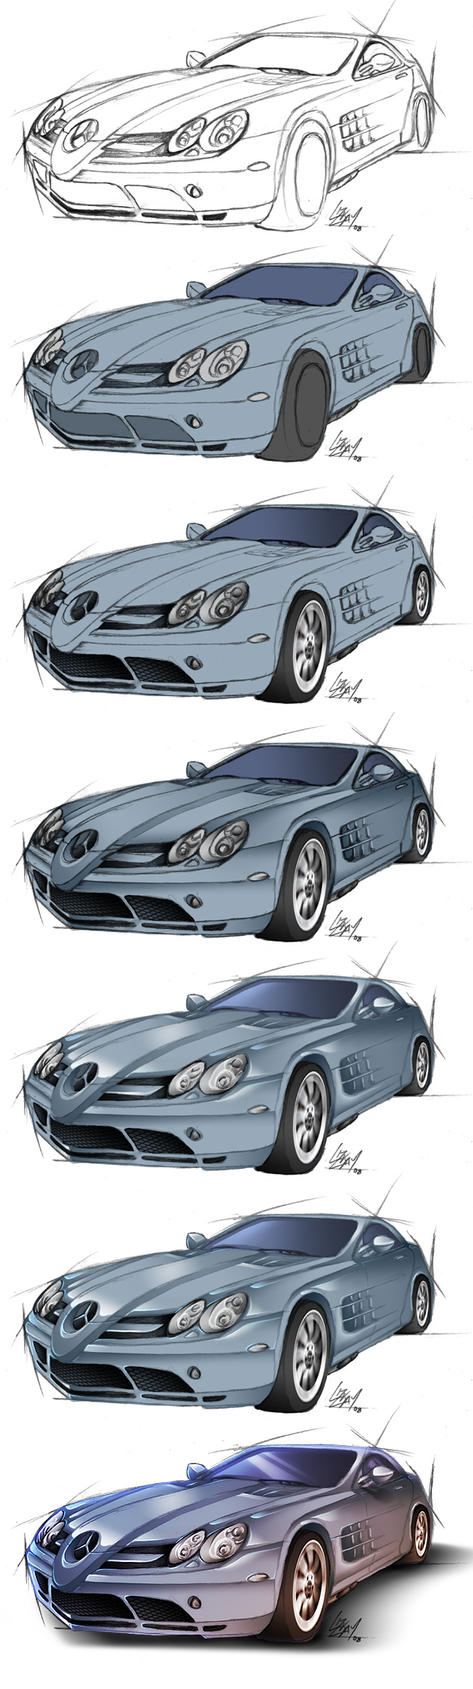 Mercedes McLaren SLR - steps by Lizkay